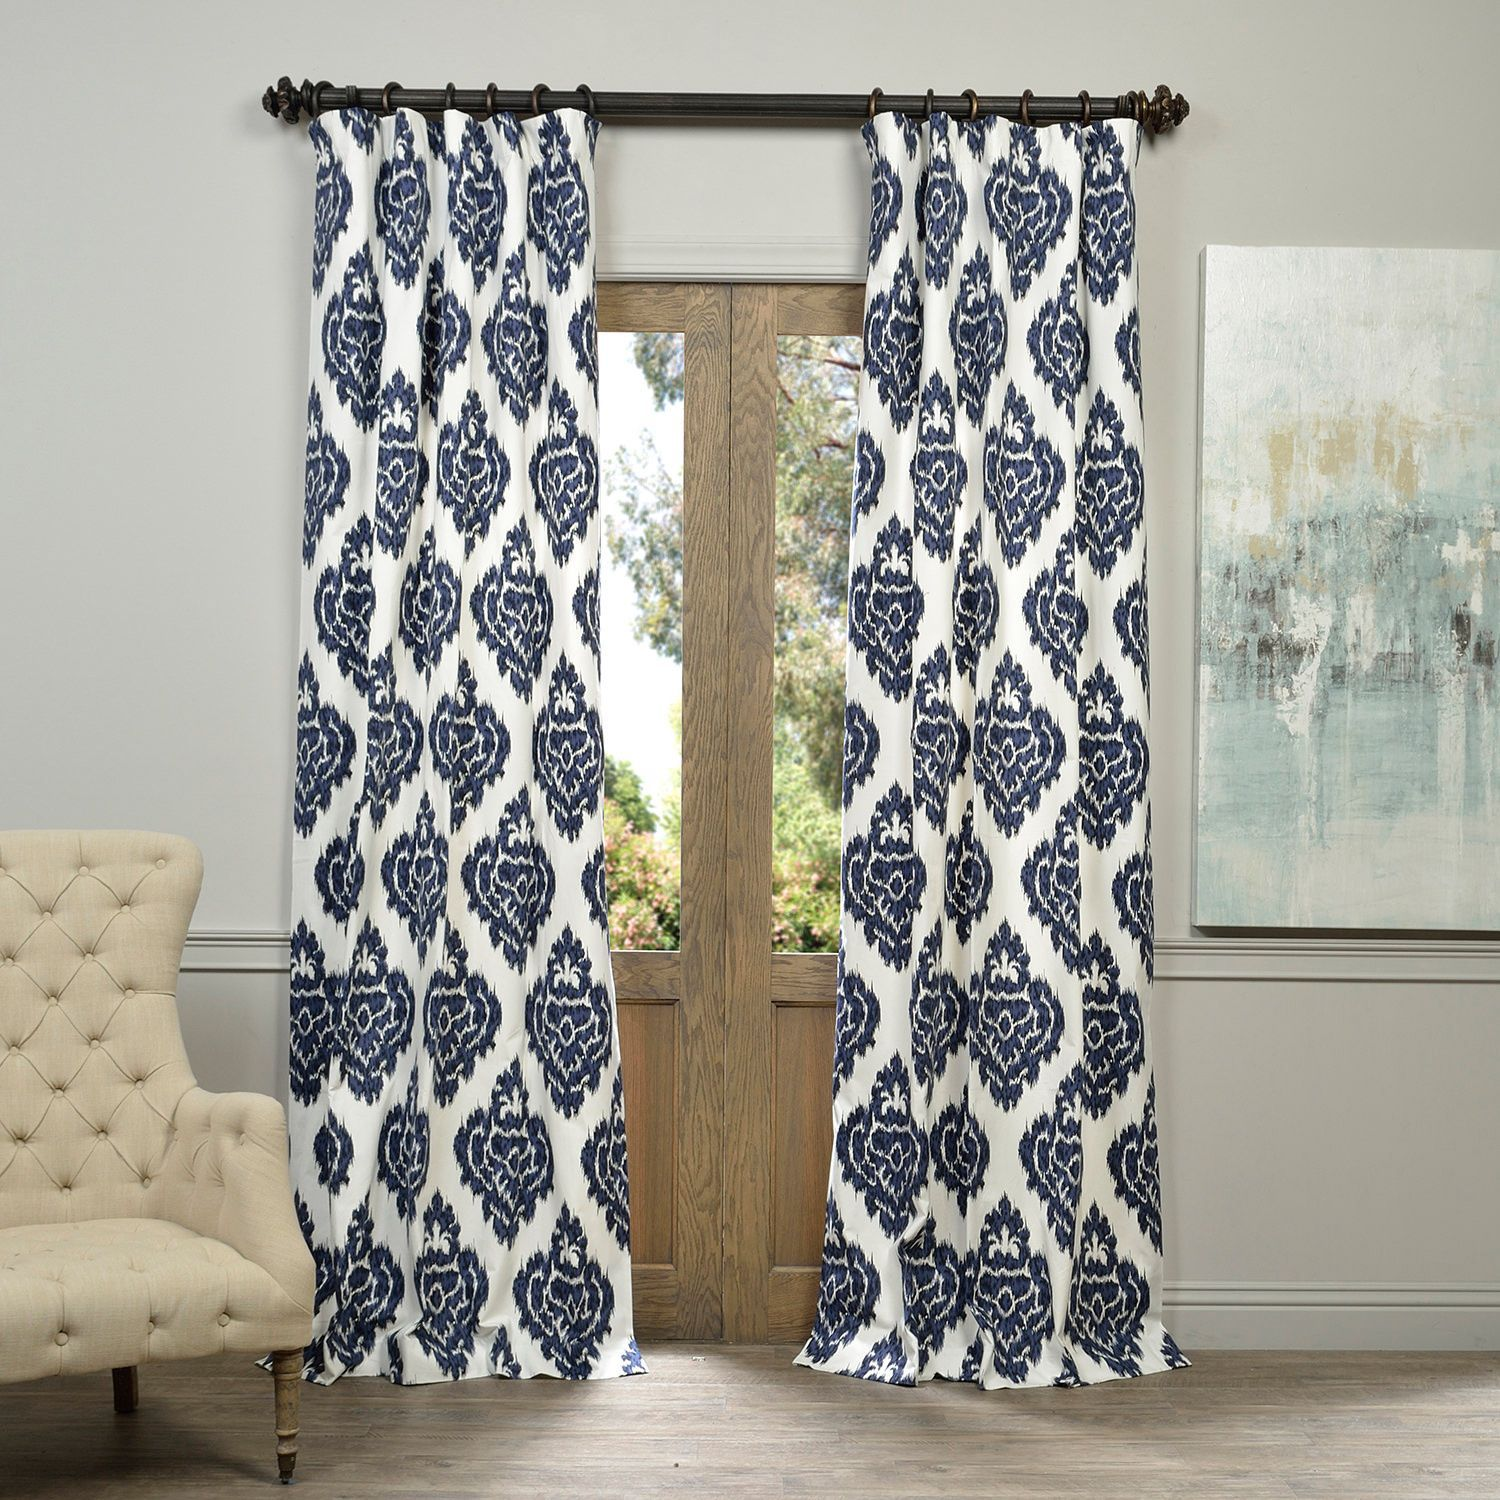 Add interest and drama to almost any room in your home with this cotton curtain panel